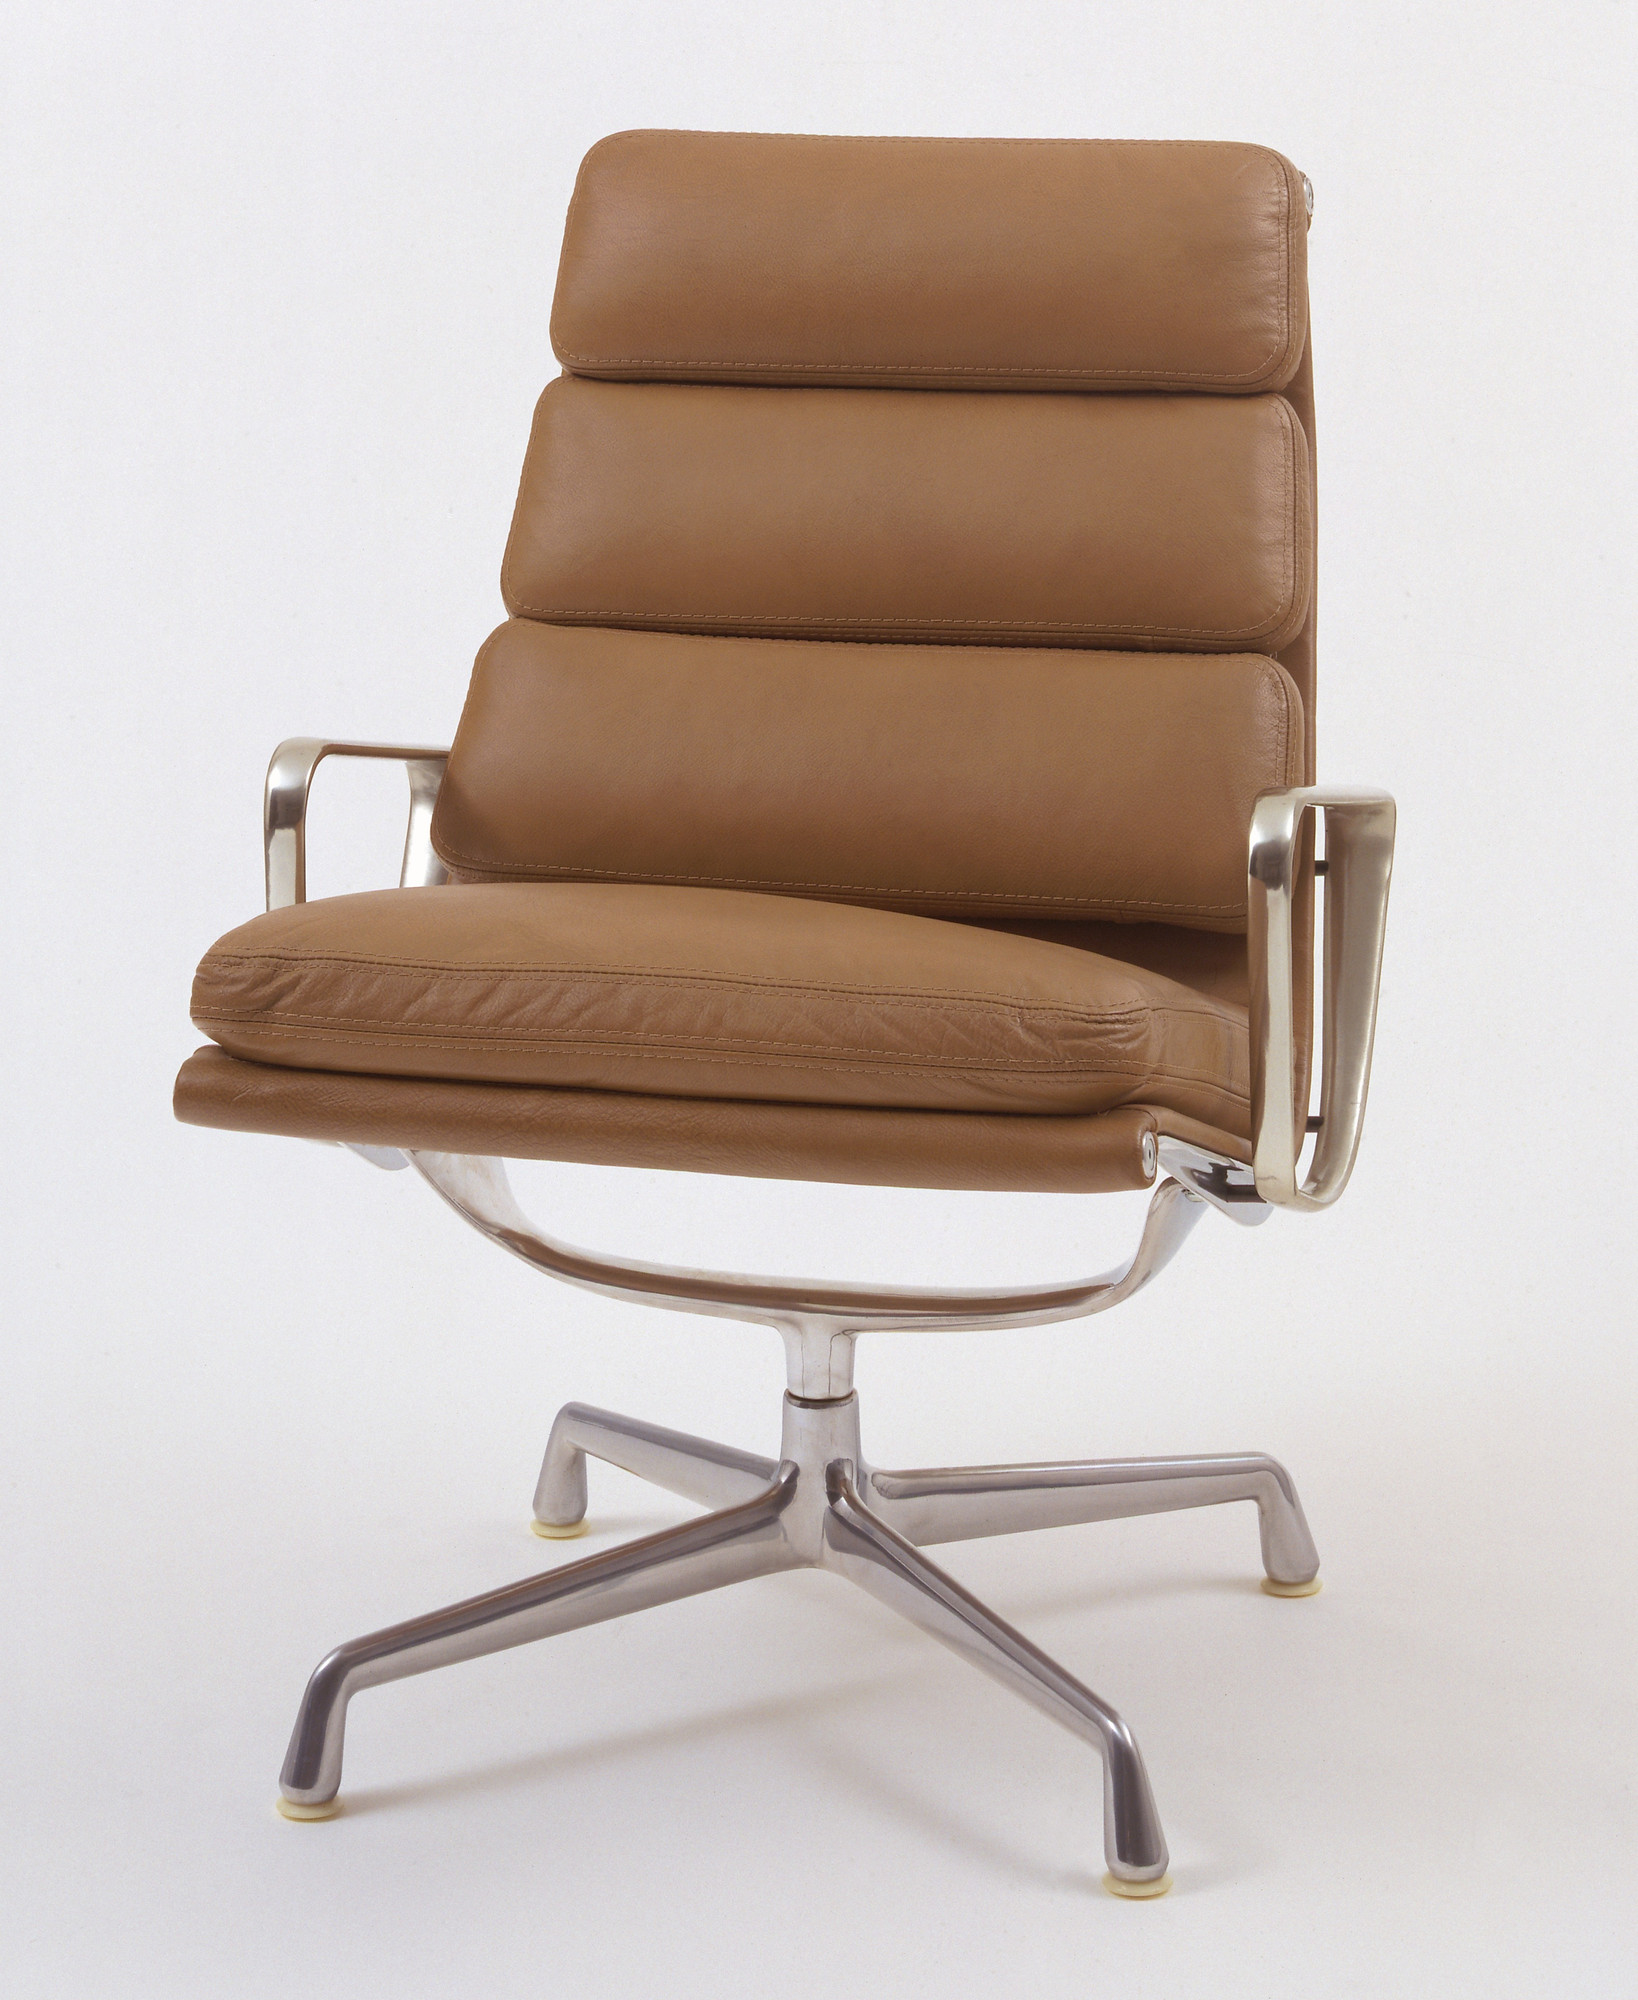 Charles Eames, Ray Eames. Lounge Chair. 1969